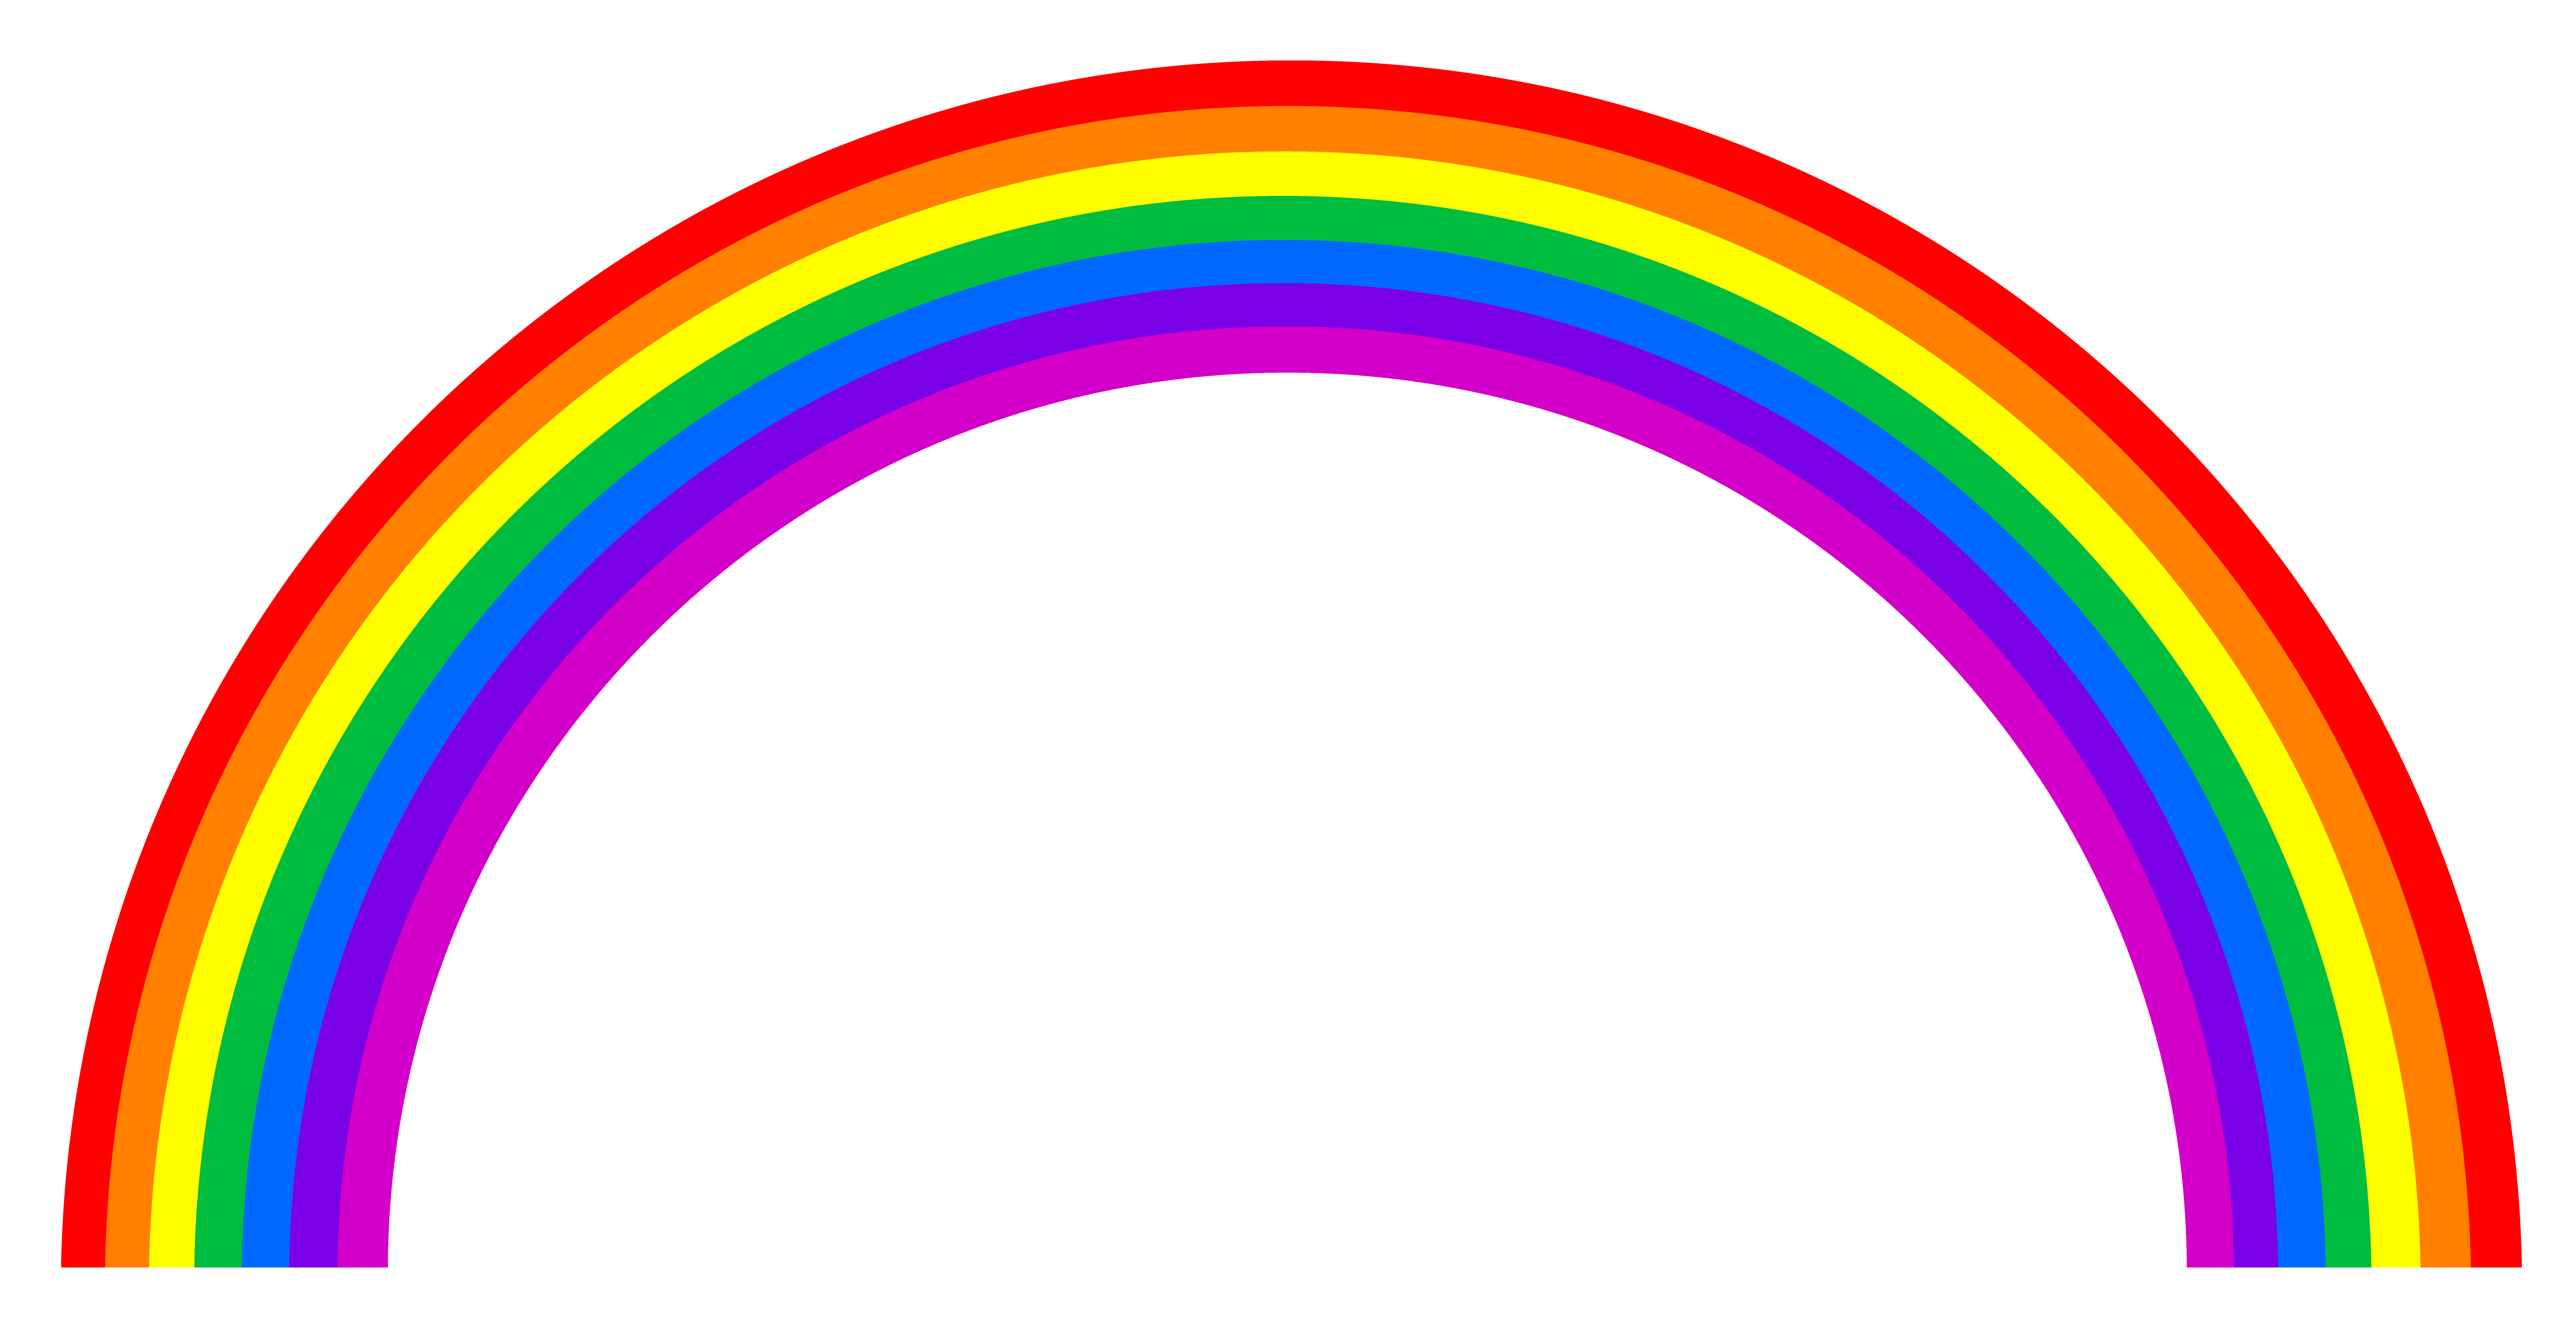 Ainbow clipart graphic royalty free stock Rainbow Clipart Black And White | Clipart Panda - Free Clipart ... graphic royalty free stock